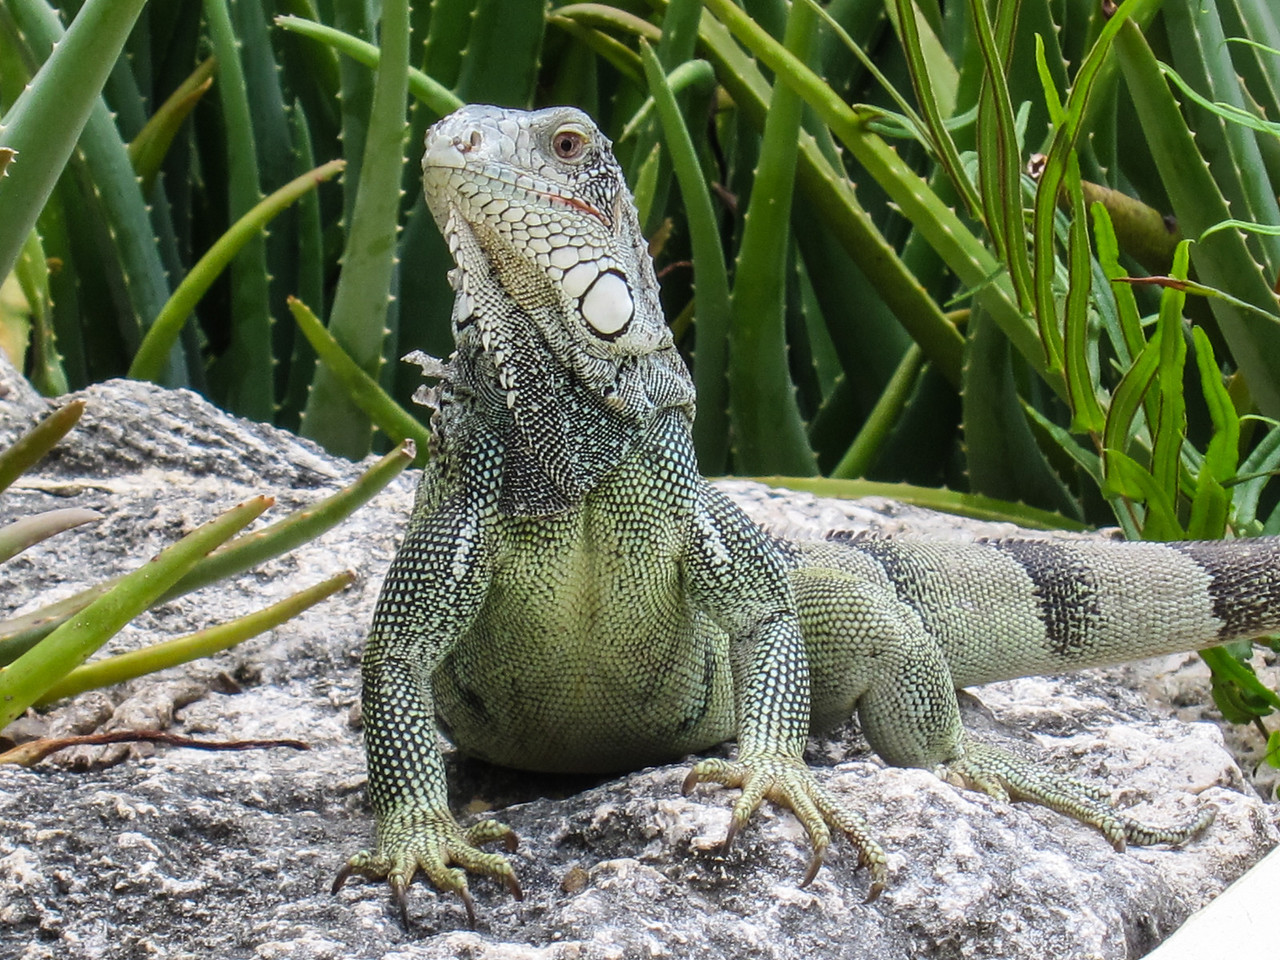 Iguana at Lions Dive & Beach Resort Curaçao - February 2013